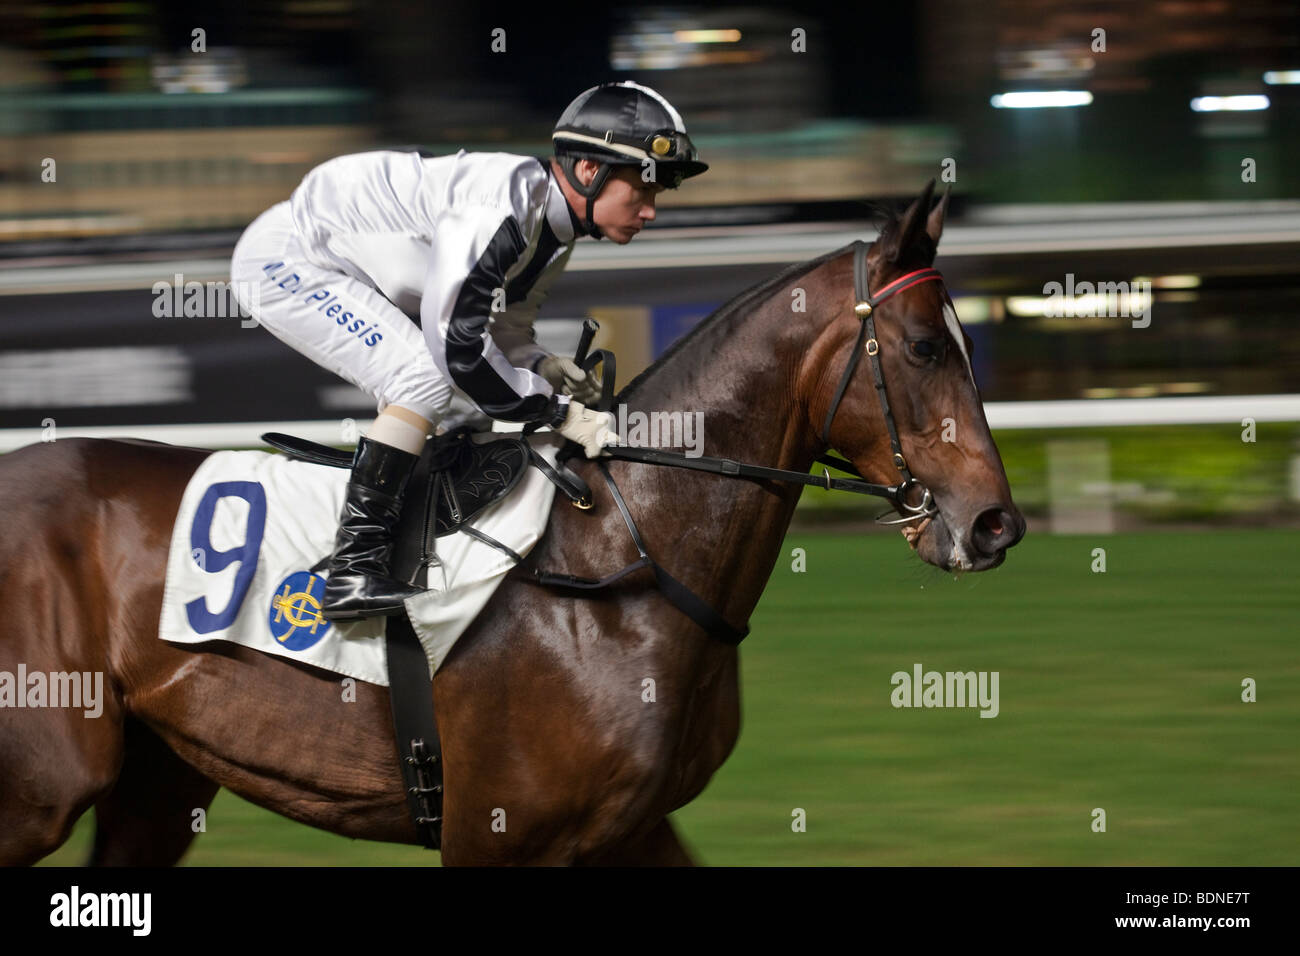 A jockey on his mount ride out to the start at a night horse racing event at the Happy Valley race course in Hong - Stock Image